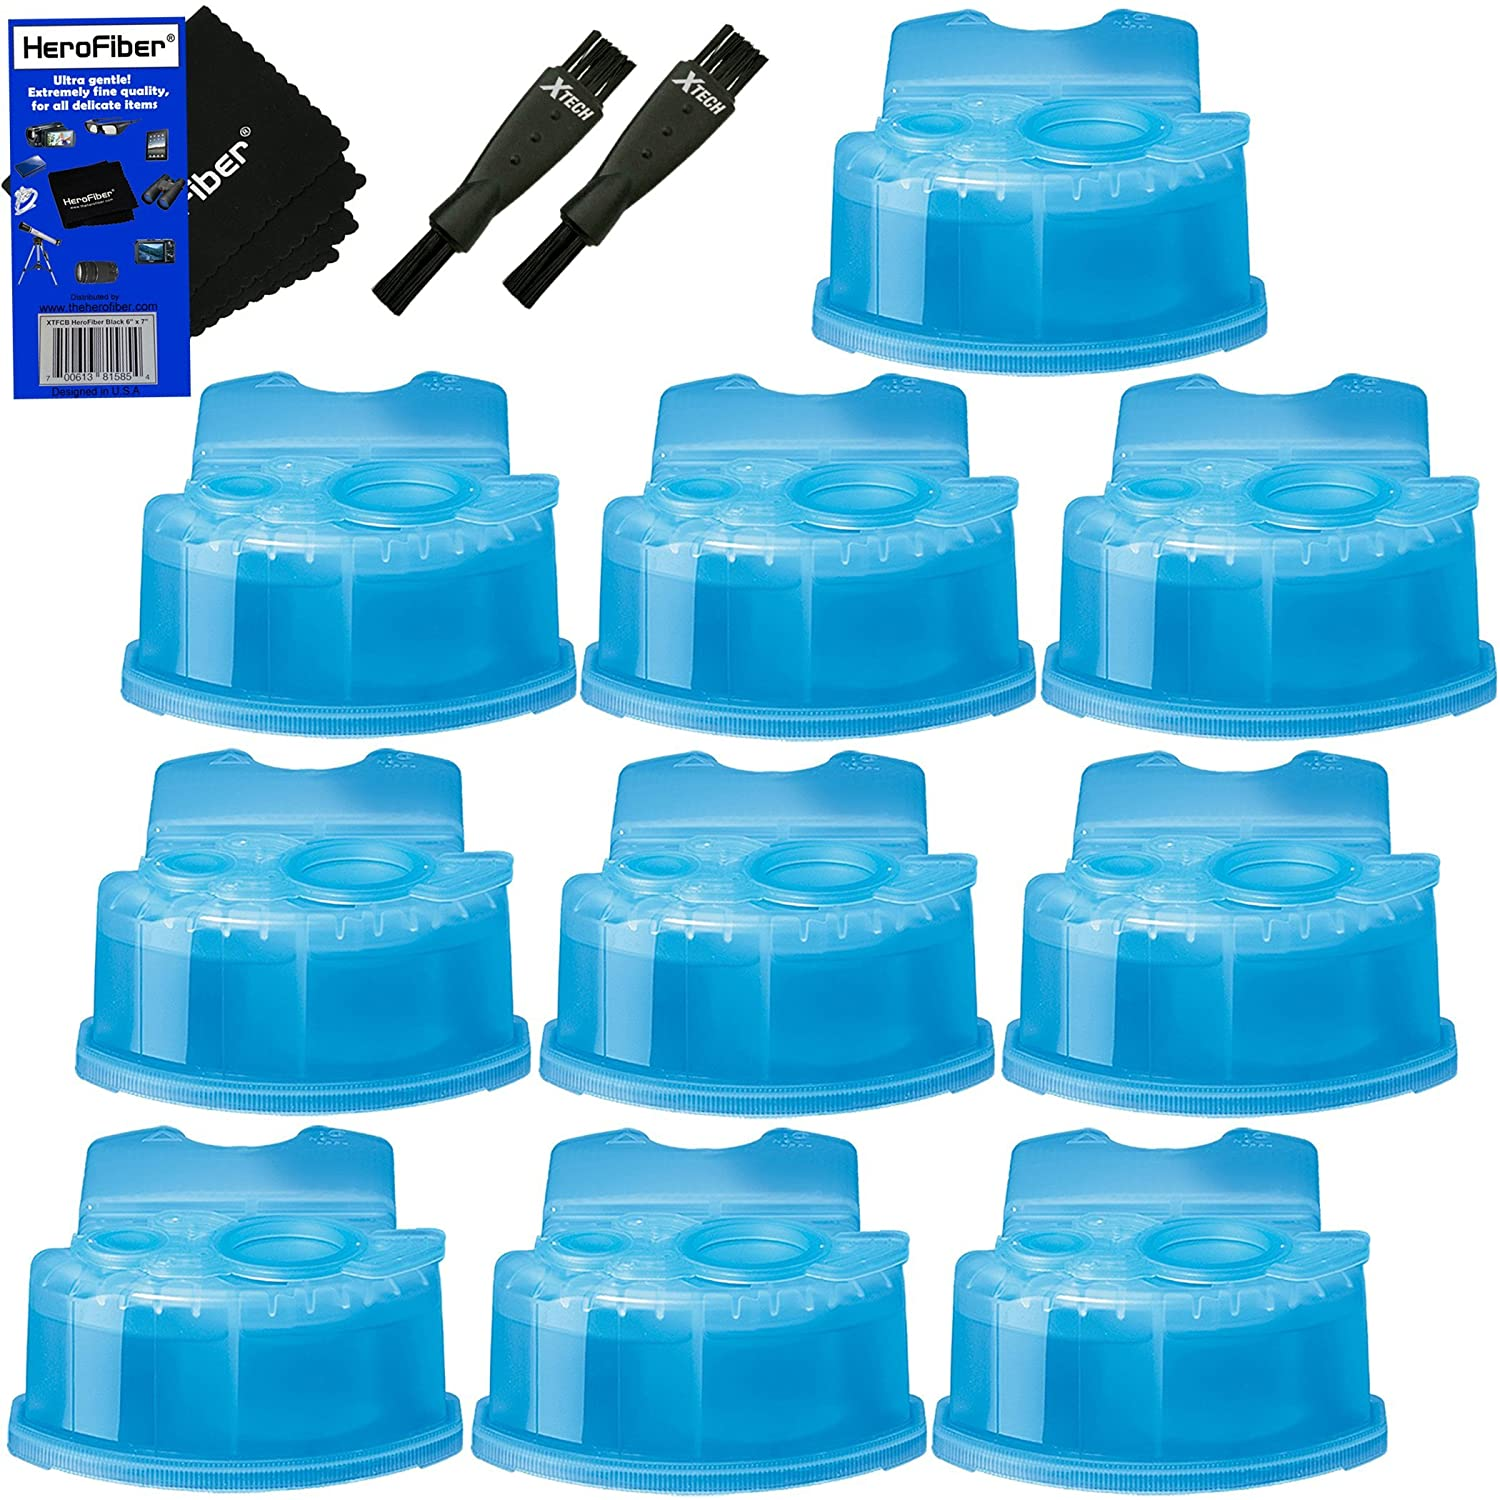 Braun Clean & Renew Refill Cartridges, Replacement Cleaner, Cleaning Solution (10 pack) for Series 3, Series 5, Series 7 & Series 9 + Double Ended Shaver Brush + HeroFiber Ultra Gentle Cleaning Cloth